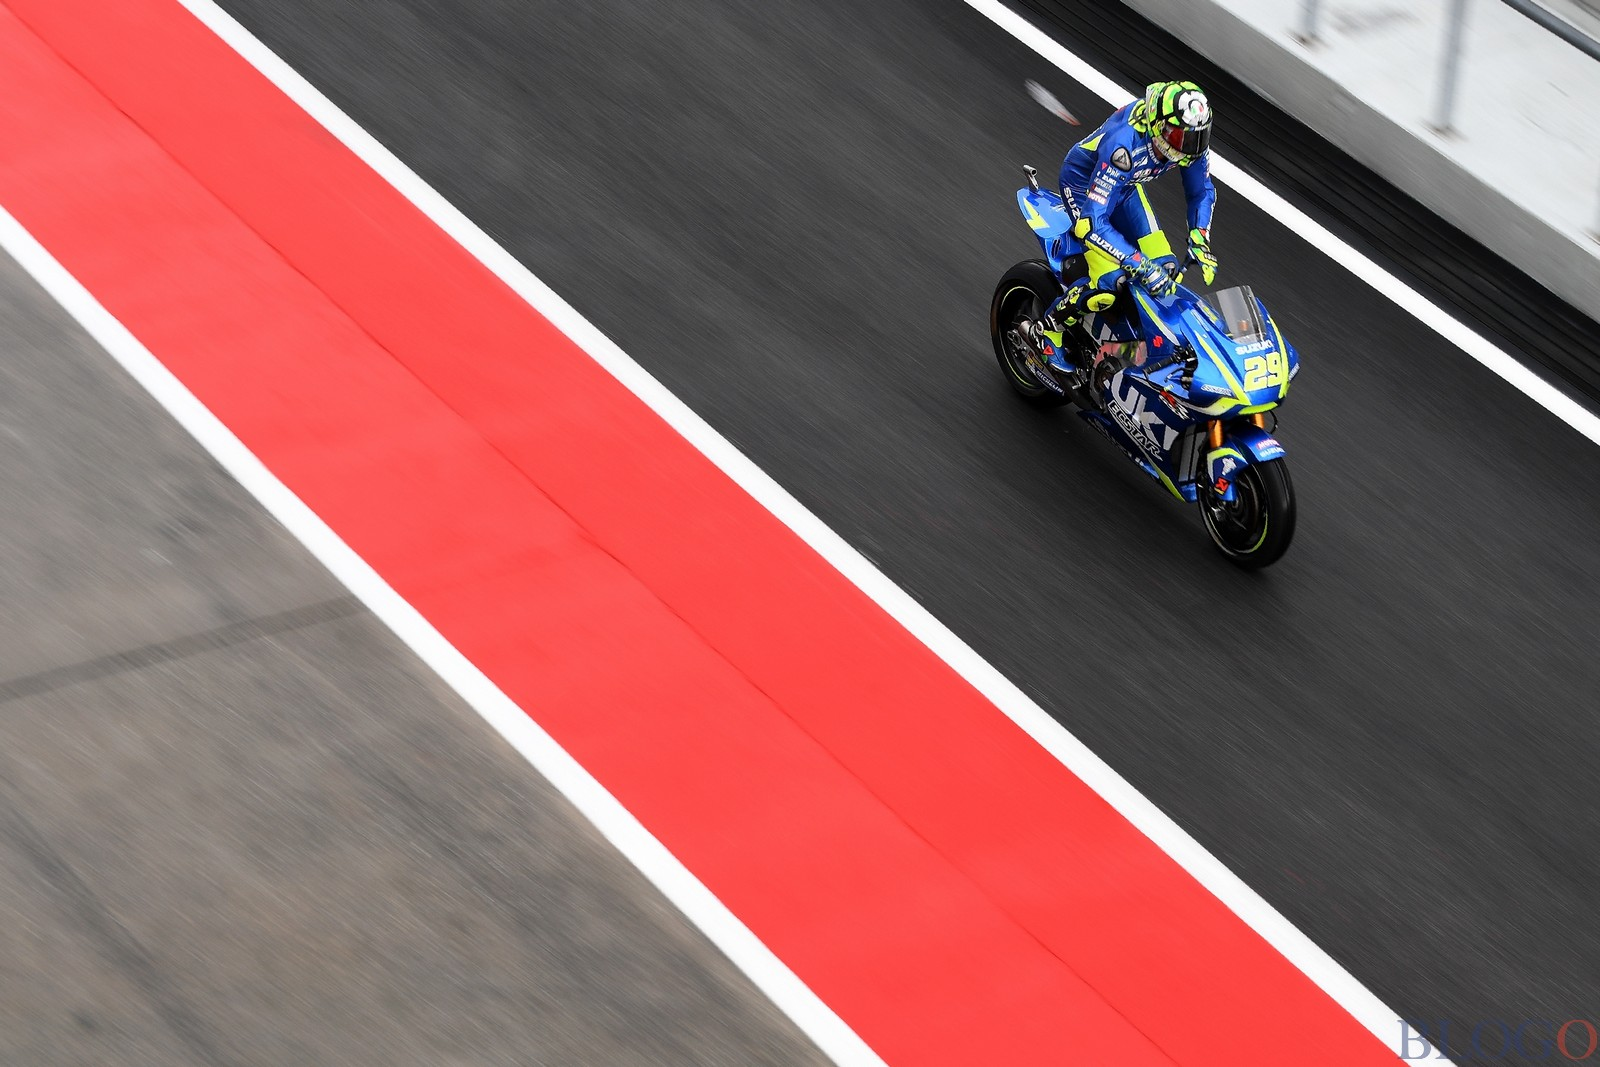 Suzuki Ecstar Italian rider Andrea Iannone rides out of the pit-lane during the second practice session of the Malaysia MotoGP at the Sepang International circuit on October 27, 2017. / AFP PHOTO / MANAN VATSYAYANA        (Photo credit should read MANAN VATSYAYANA/AFP/Getty Images)